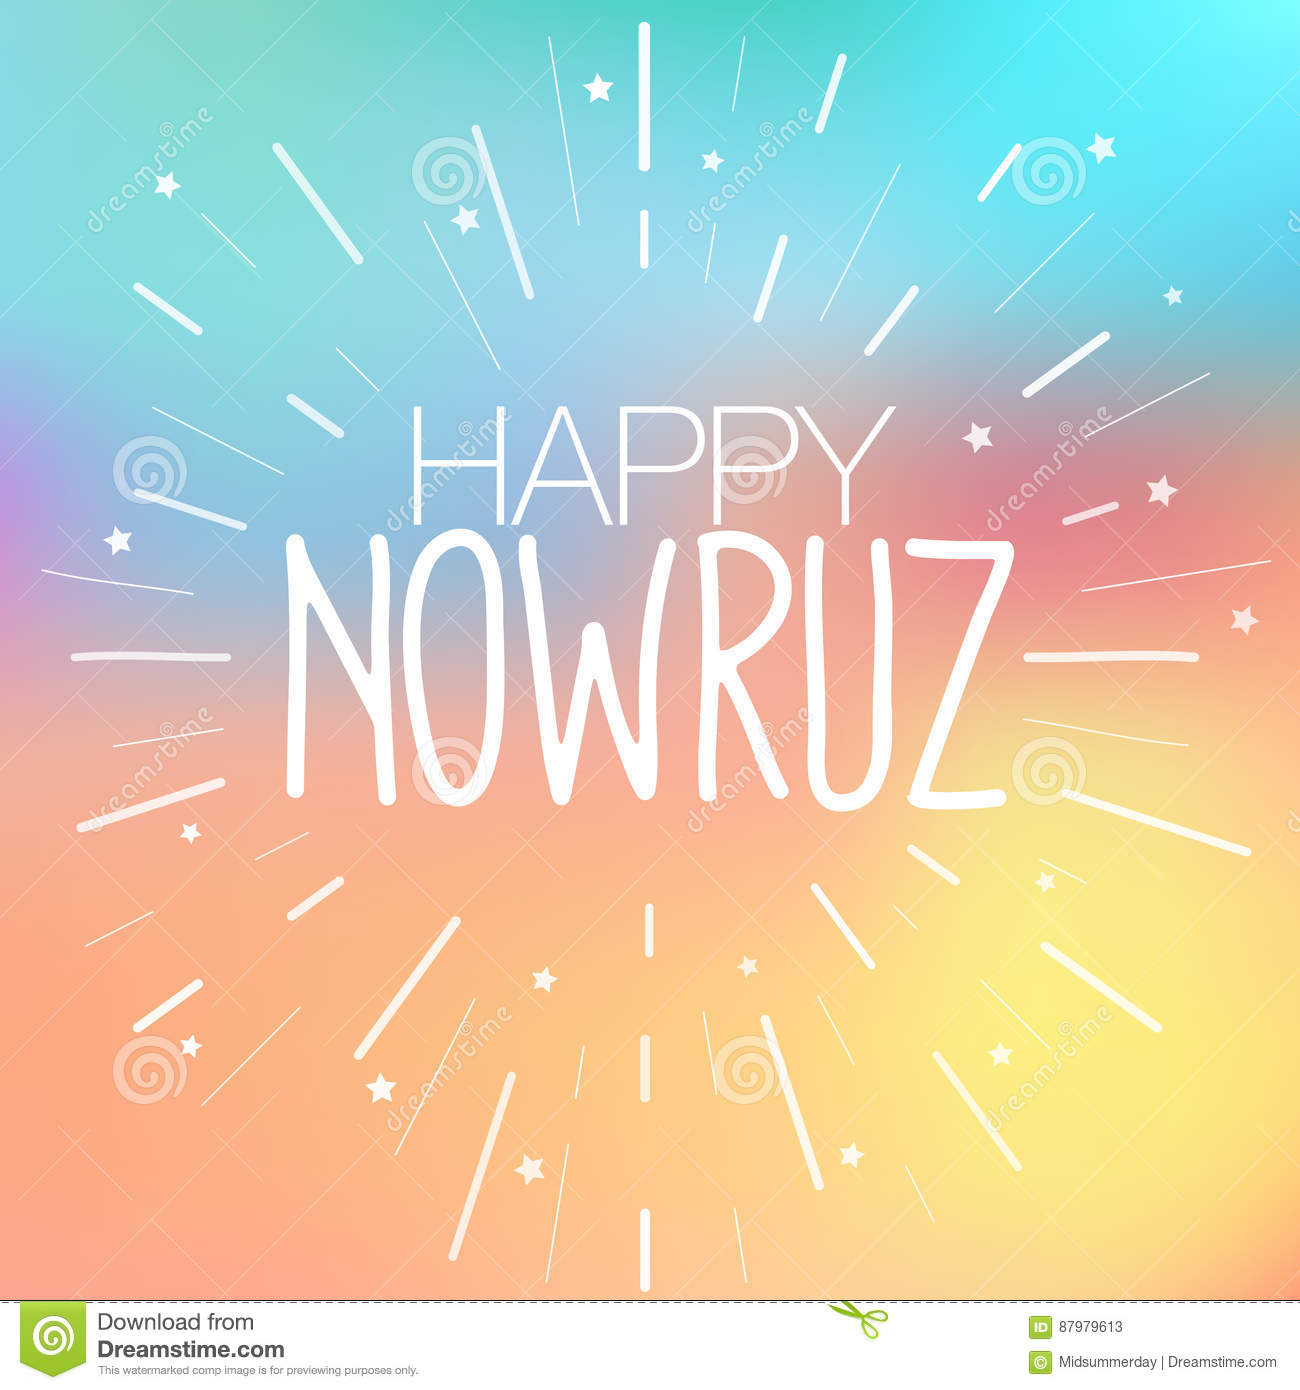 Happy nowruz greeting card iranian persian new year march happy nowruz greeting card iranian persian new year march equinox colorful vector illustration for holiday celebration kristyandbryce Gallery